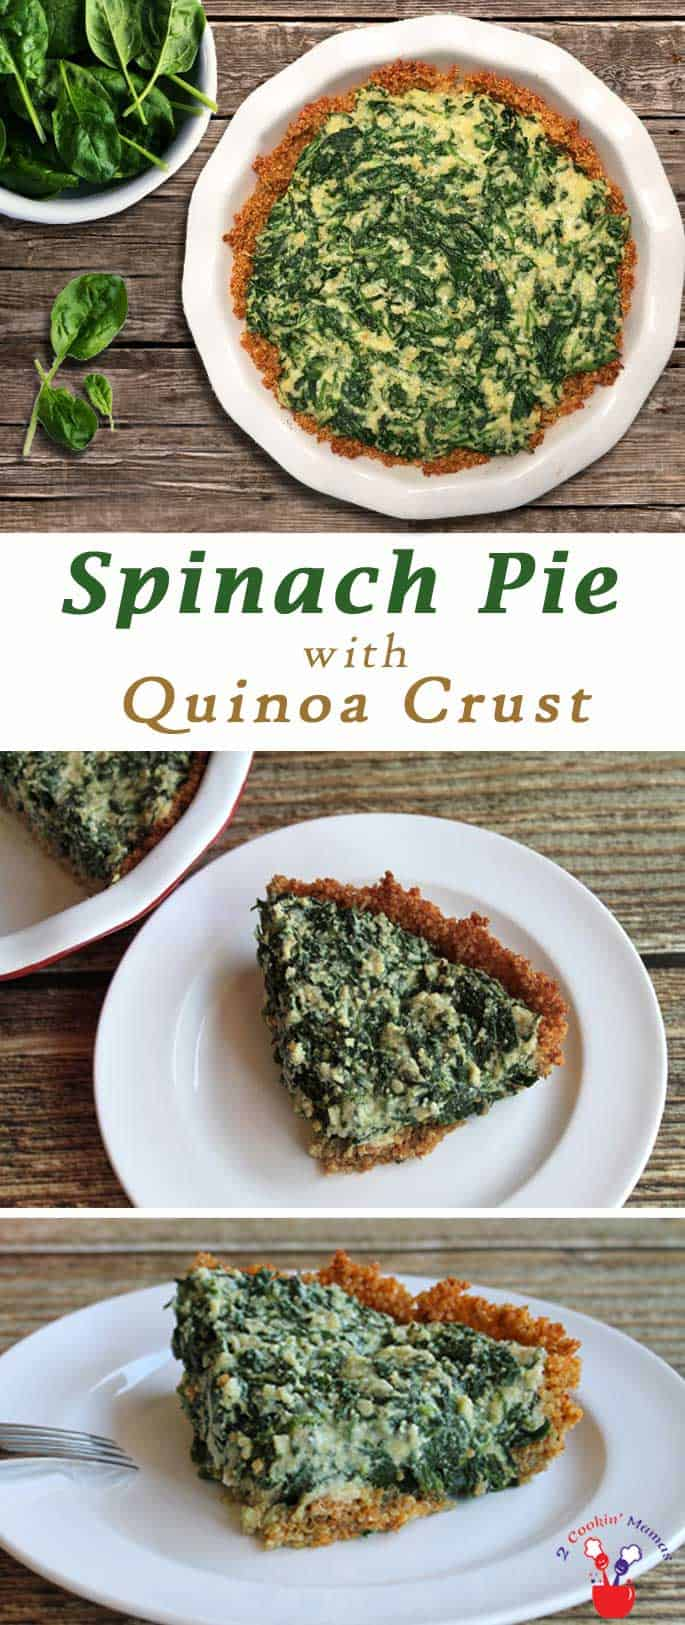 A delicious gluten-free spinach pie that even your non gluten-free friends will love! It's a healthy side dish set into a tasty, crunchy quinoa crust. #glutenfree #sidedish #spinach #quinoacrust